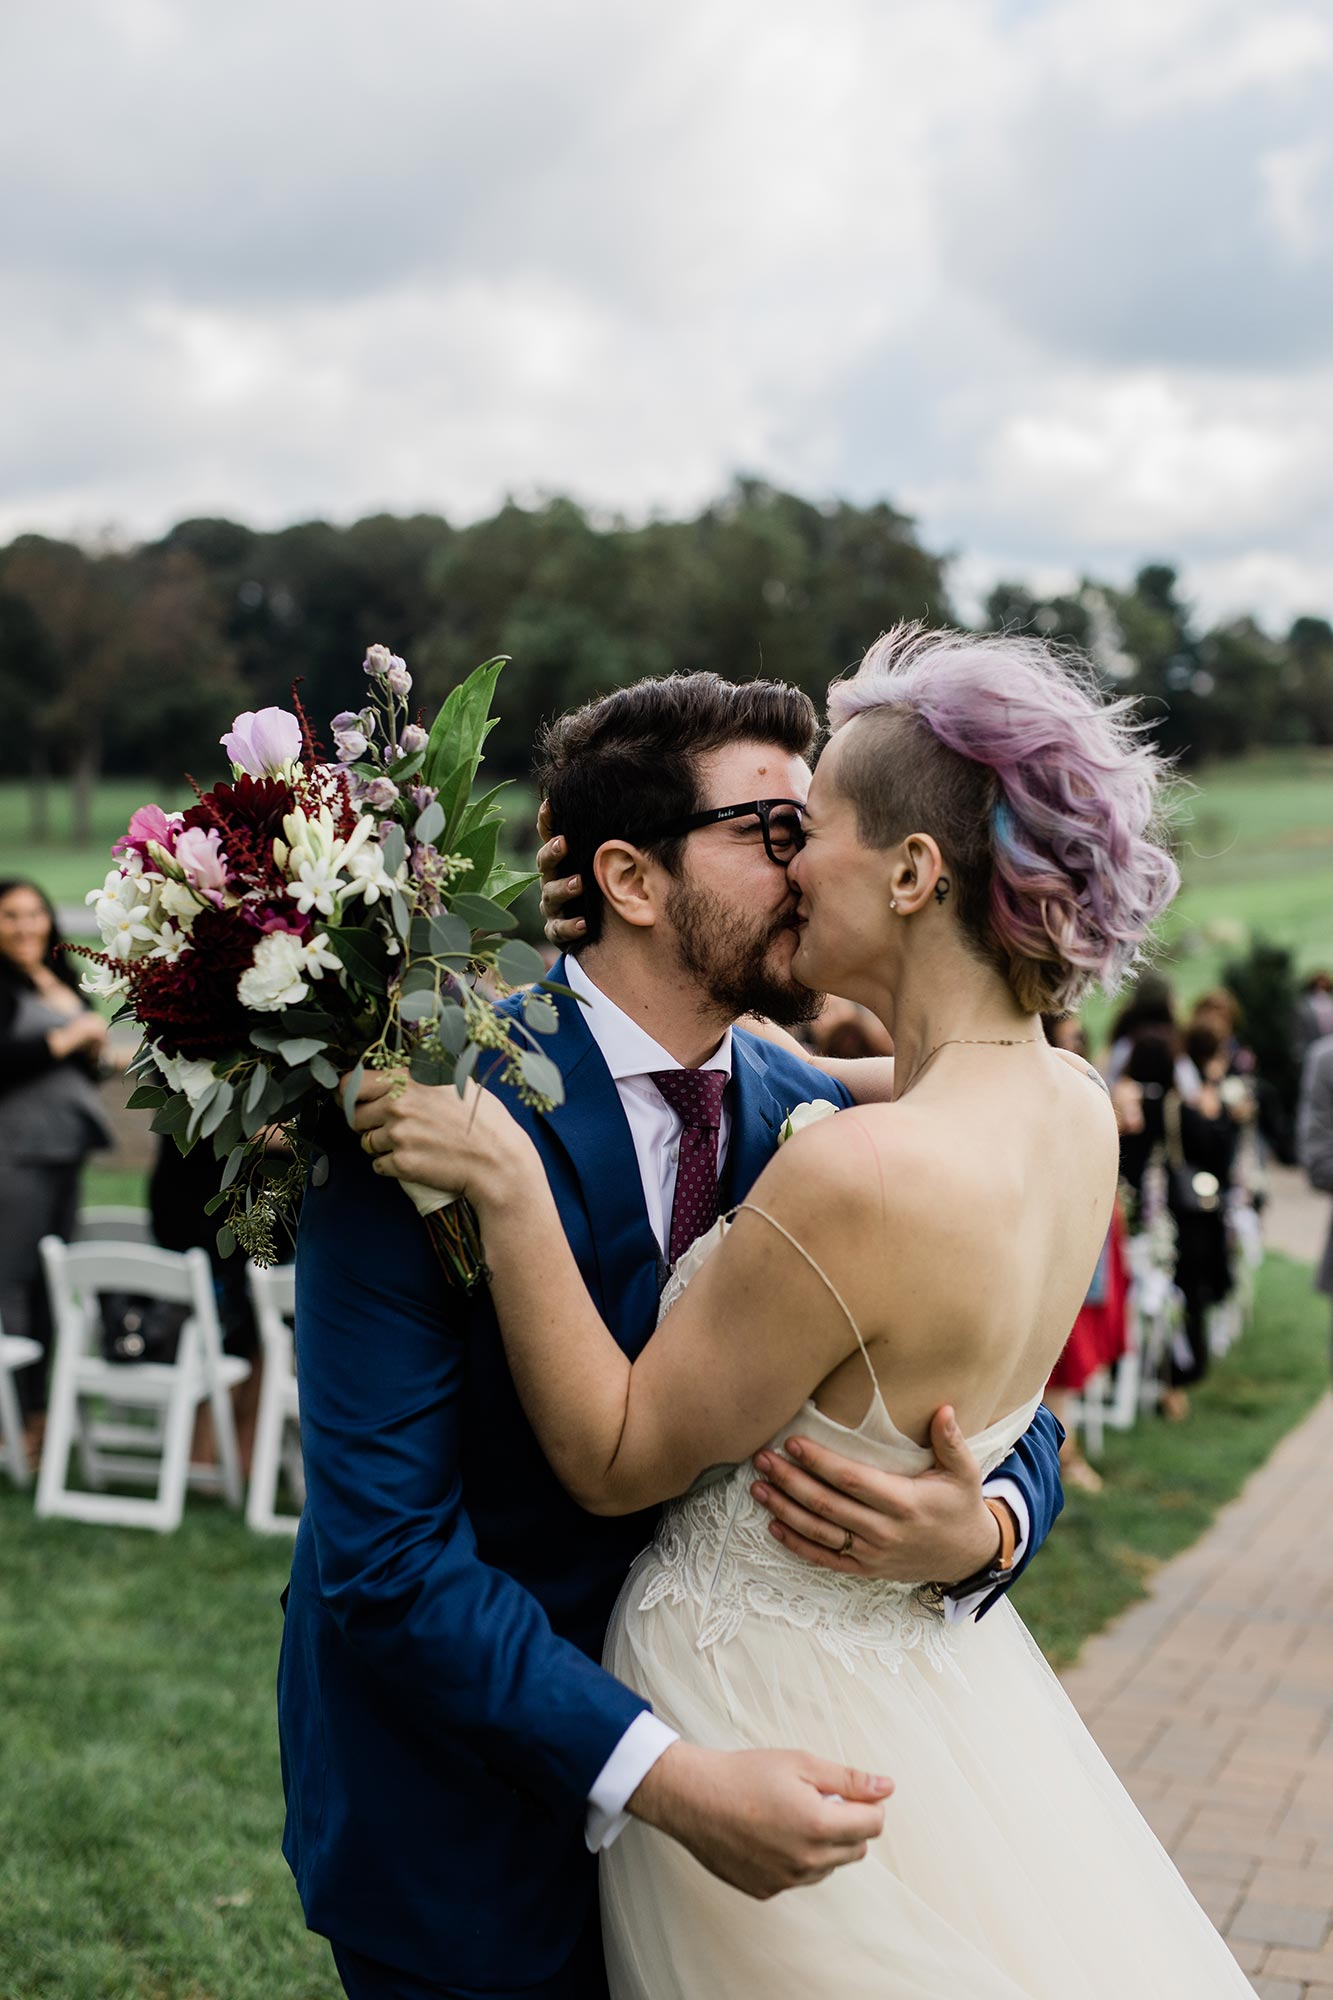 Chic Queer Wedding in West Chester Pennsylvania showing couple kissing after ceremony Judson Rappaport Photography